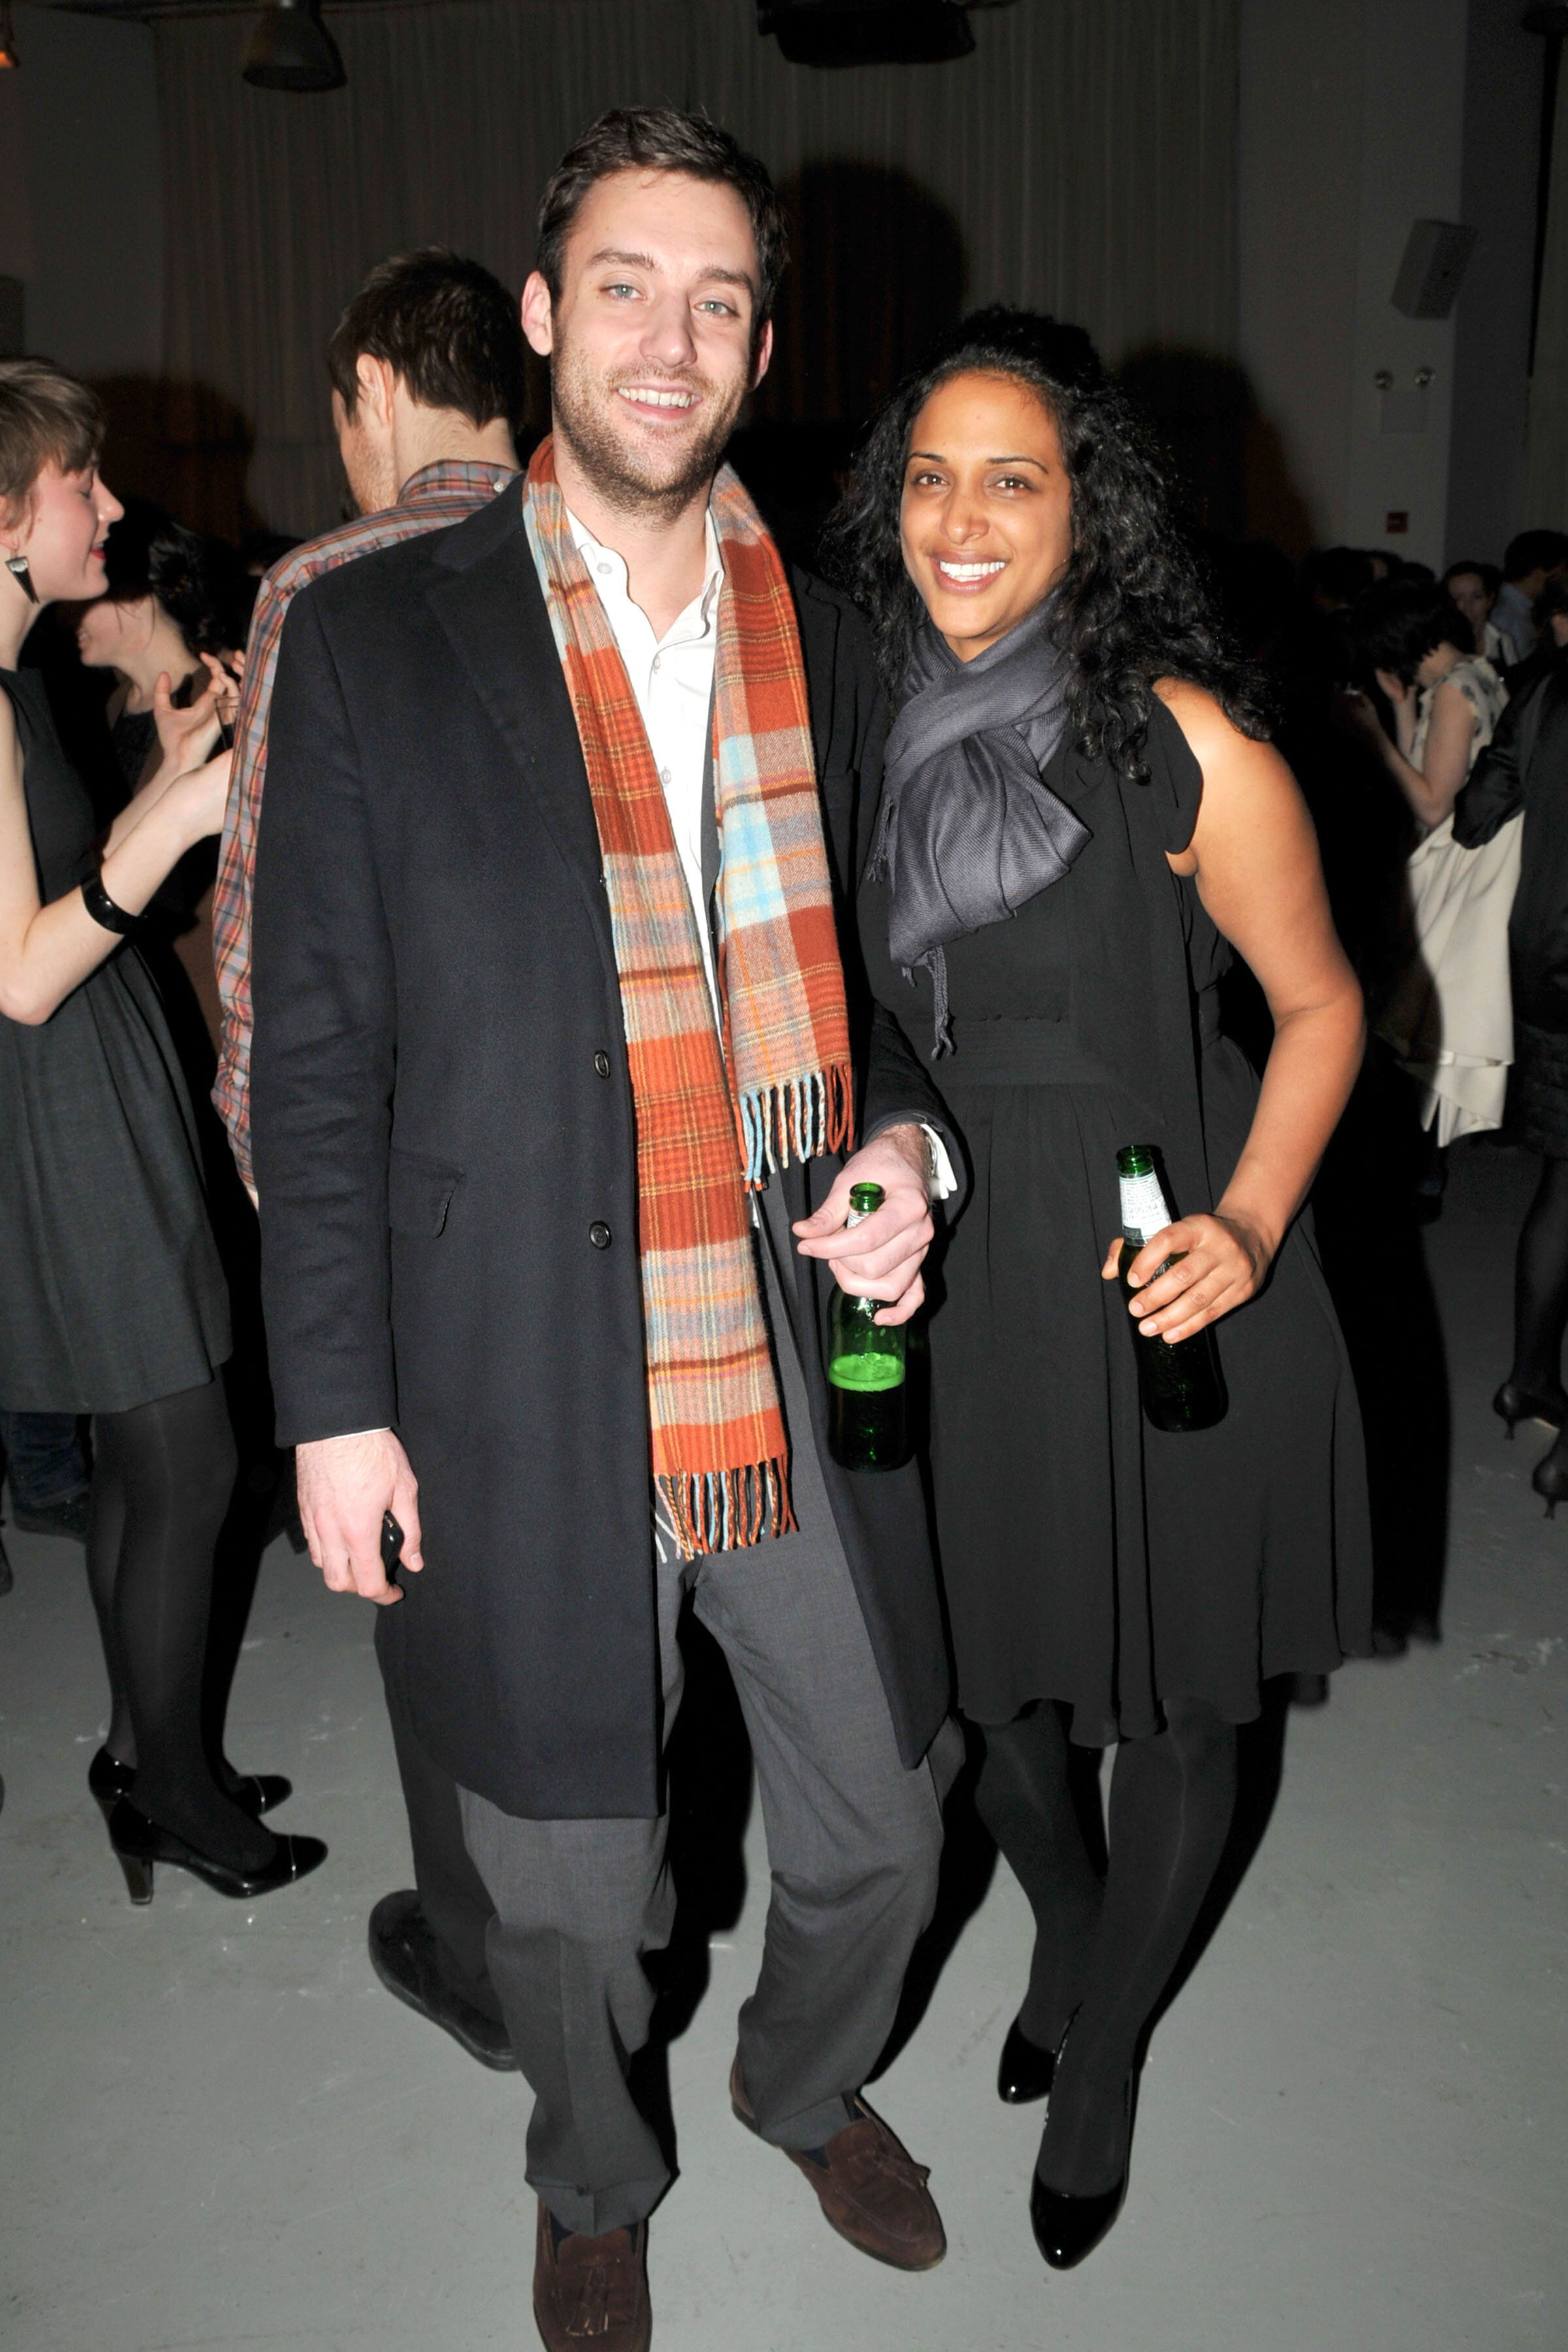 Cooke Maroney and Vanessa Riding attend an after-party at Bar 2000 on March 6, 2009 in New York City.